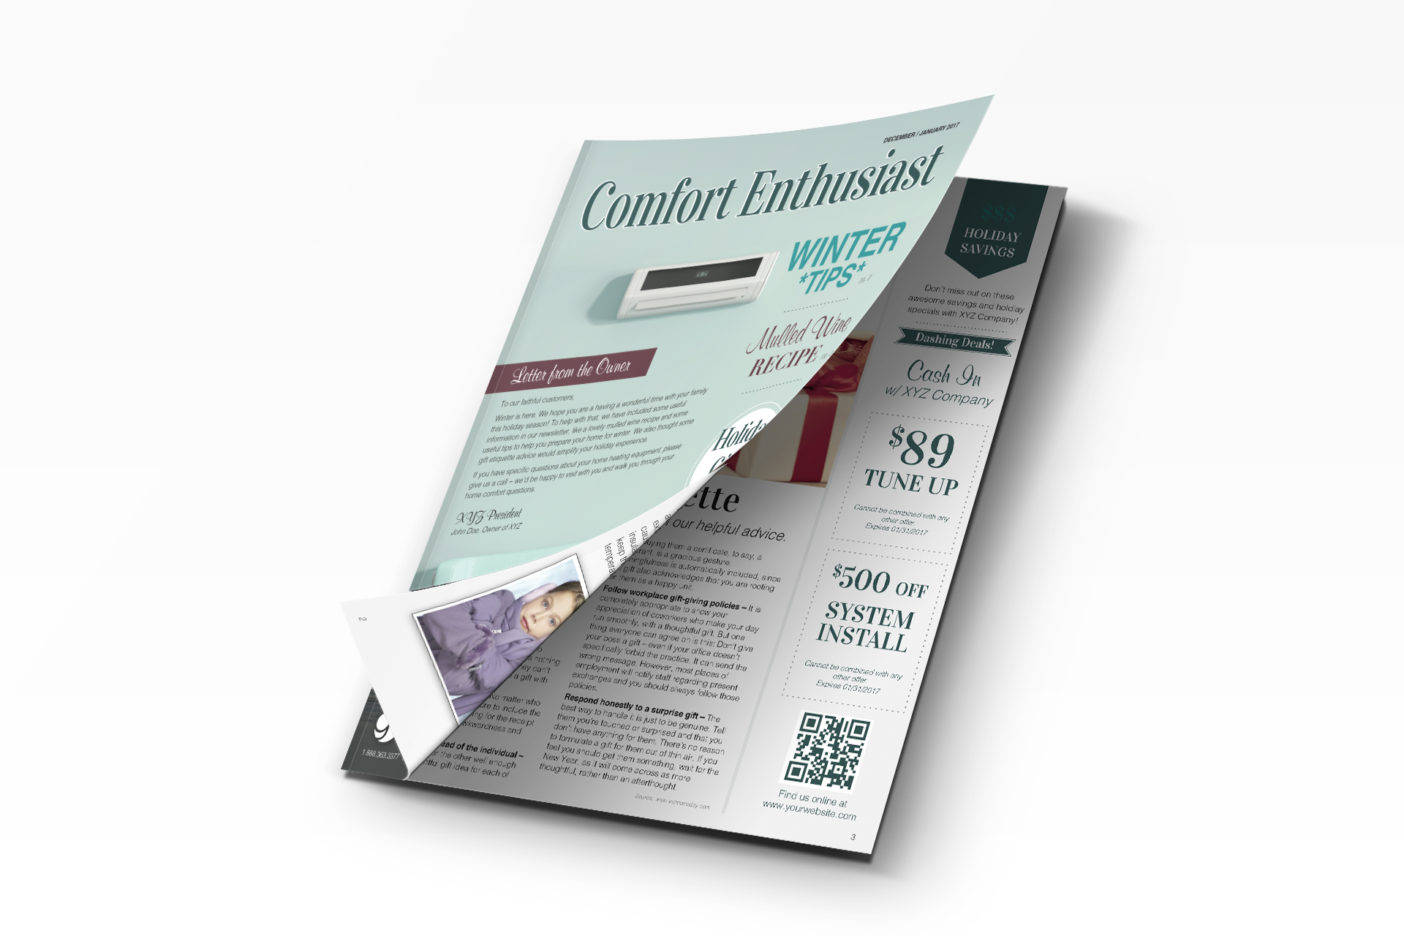 An HVAC marketing newsletter with winter themes and HVAC coupons.